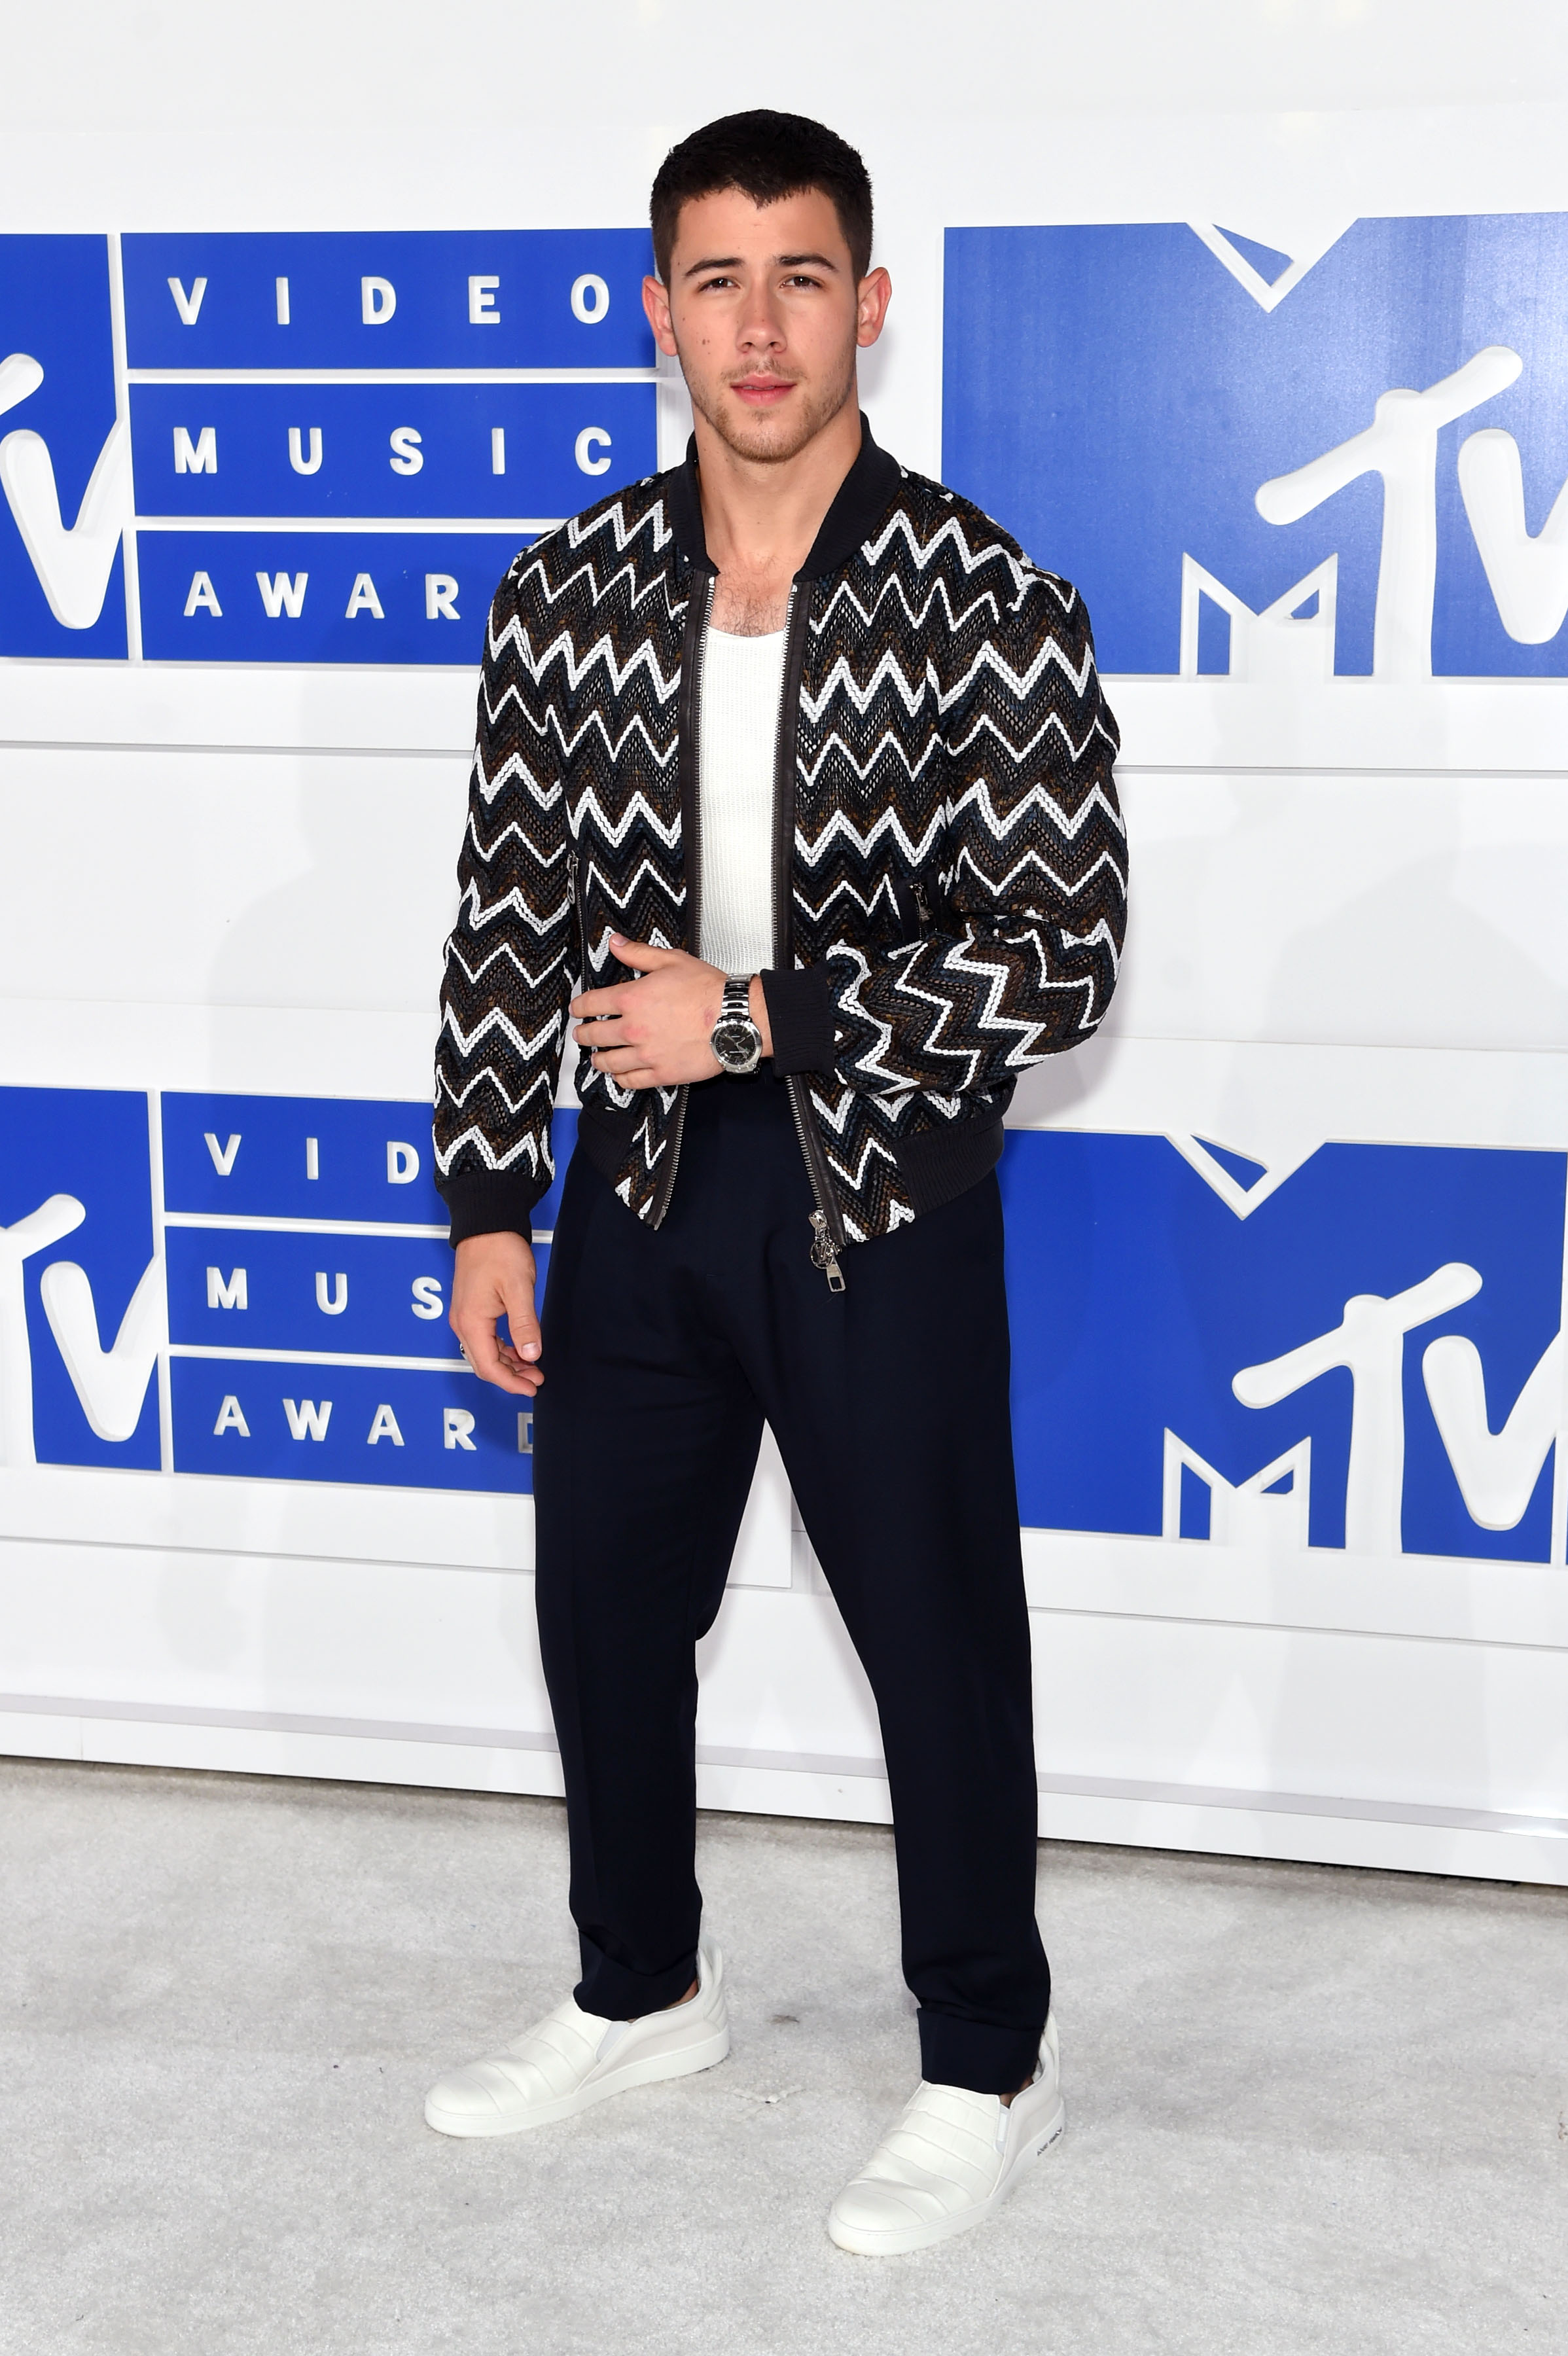 Nick Jonas attends the 2016 MTV Video Music Awards at Madison Square Garden on Aug. 28, 2016 in New York City.